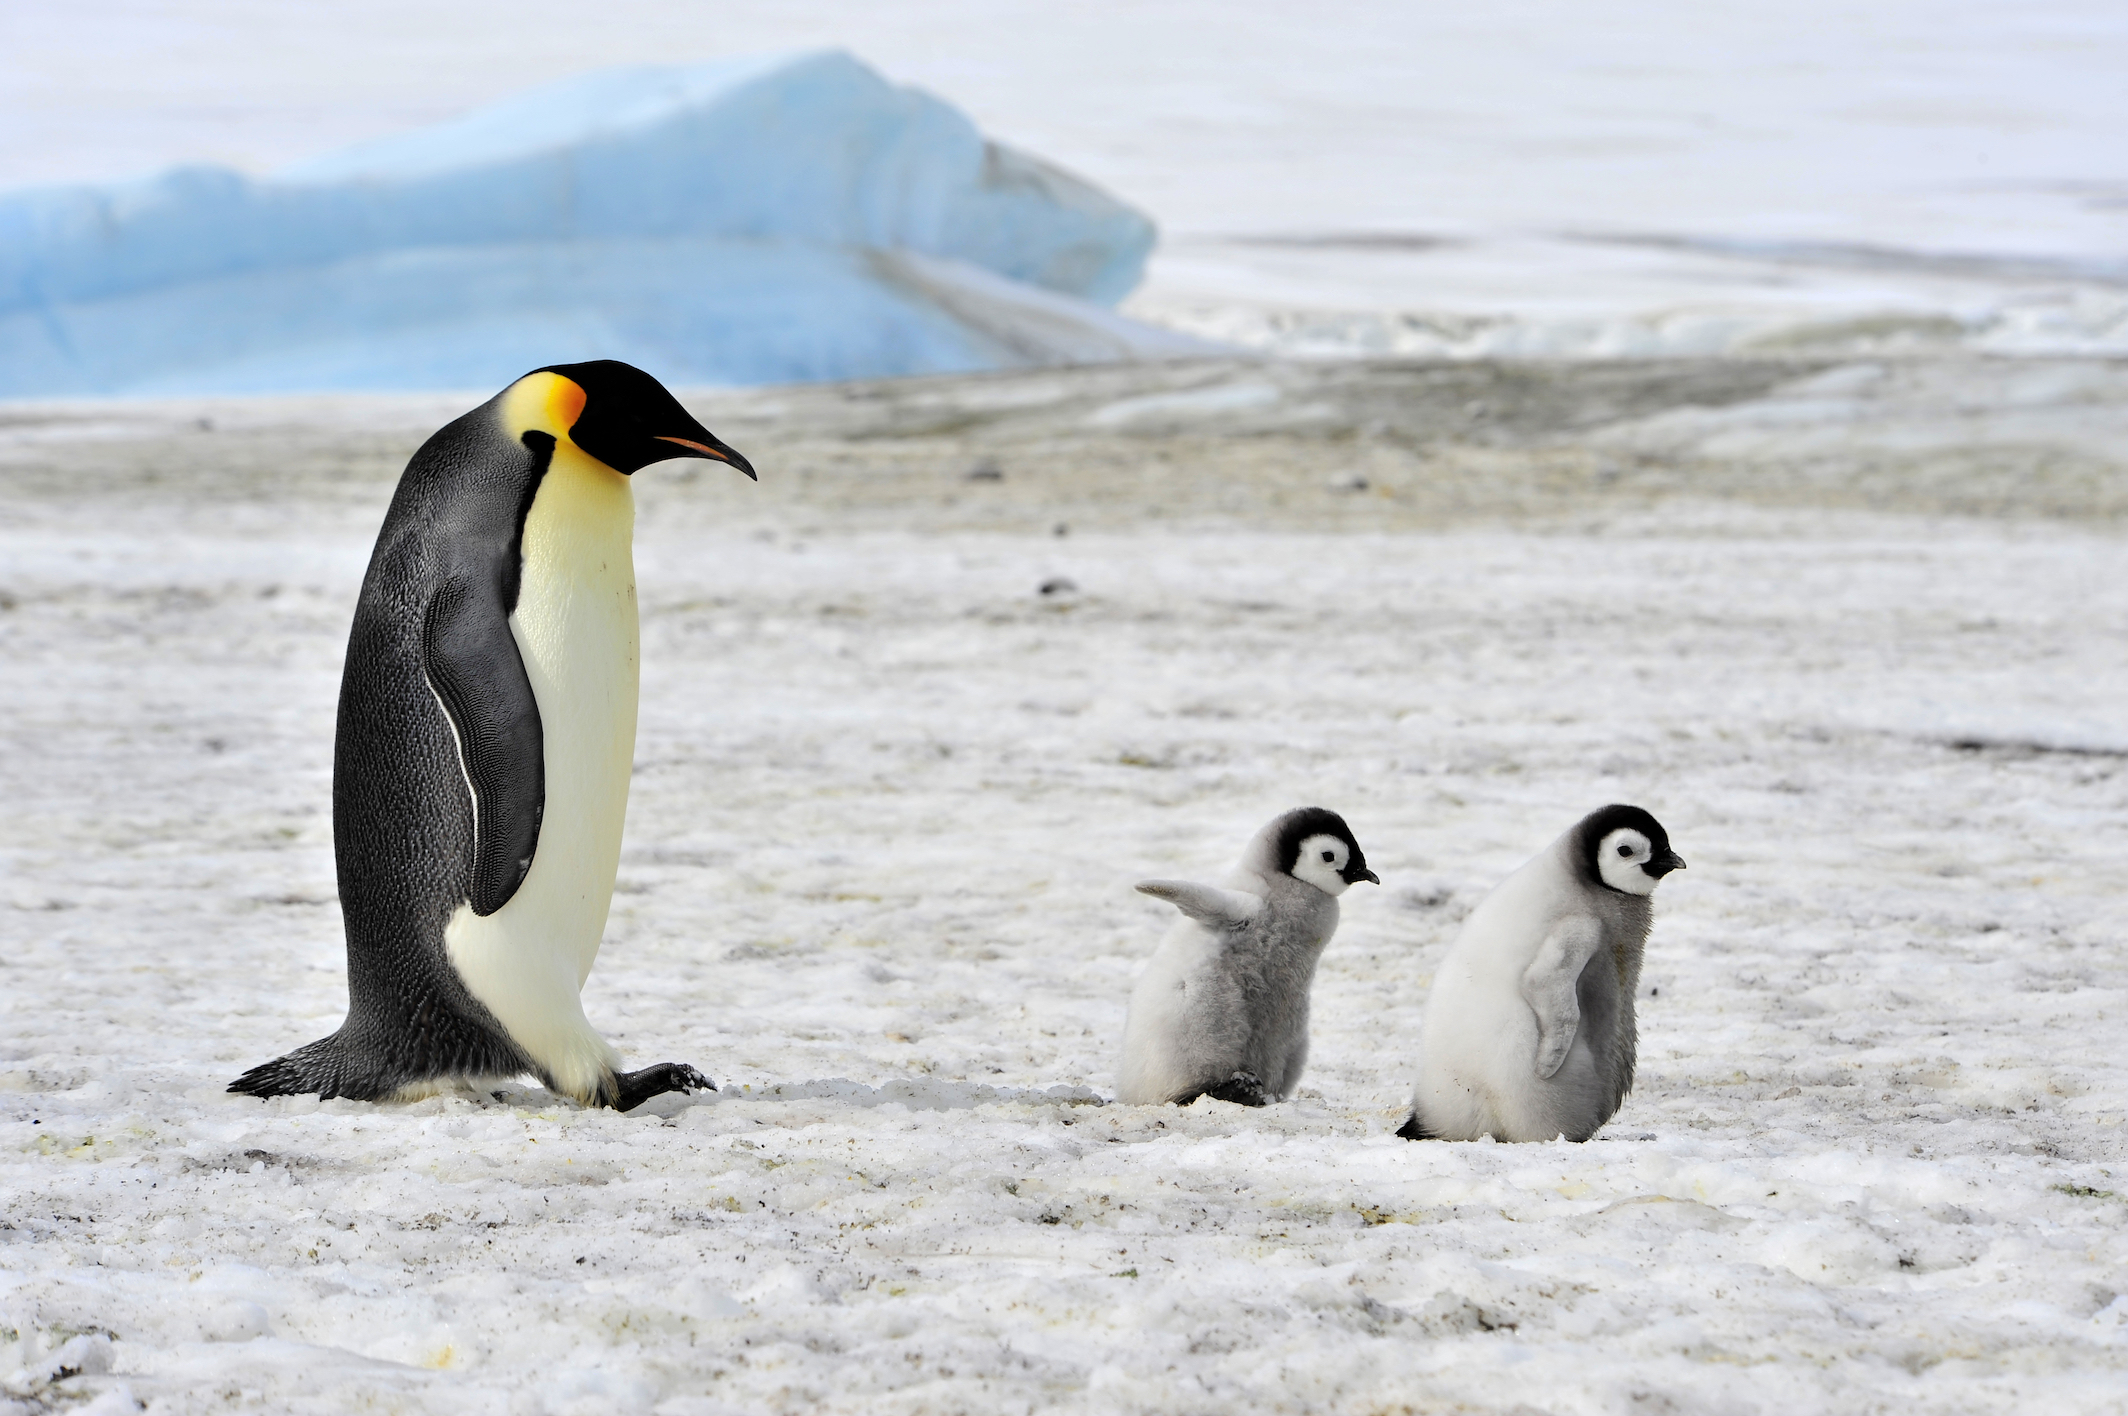 Emperor penguins may not survive the loss of their breeding and feeding grounds from climate change, a new study said.